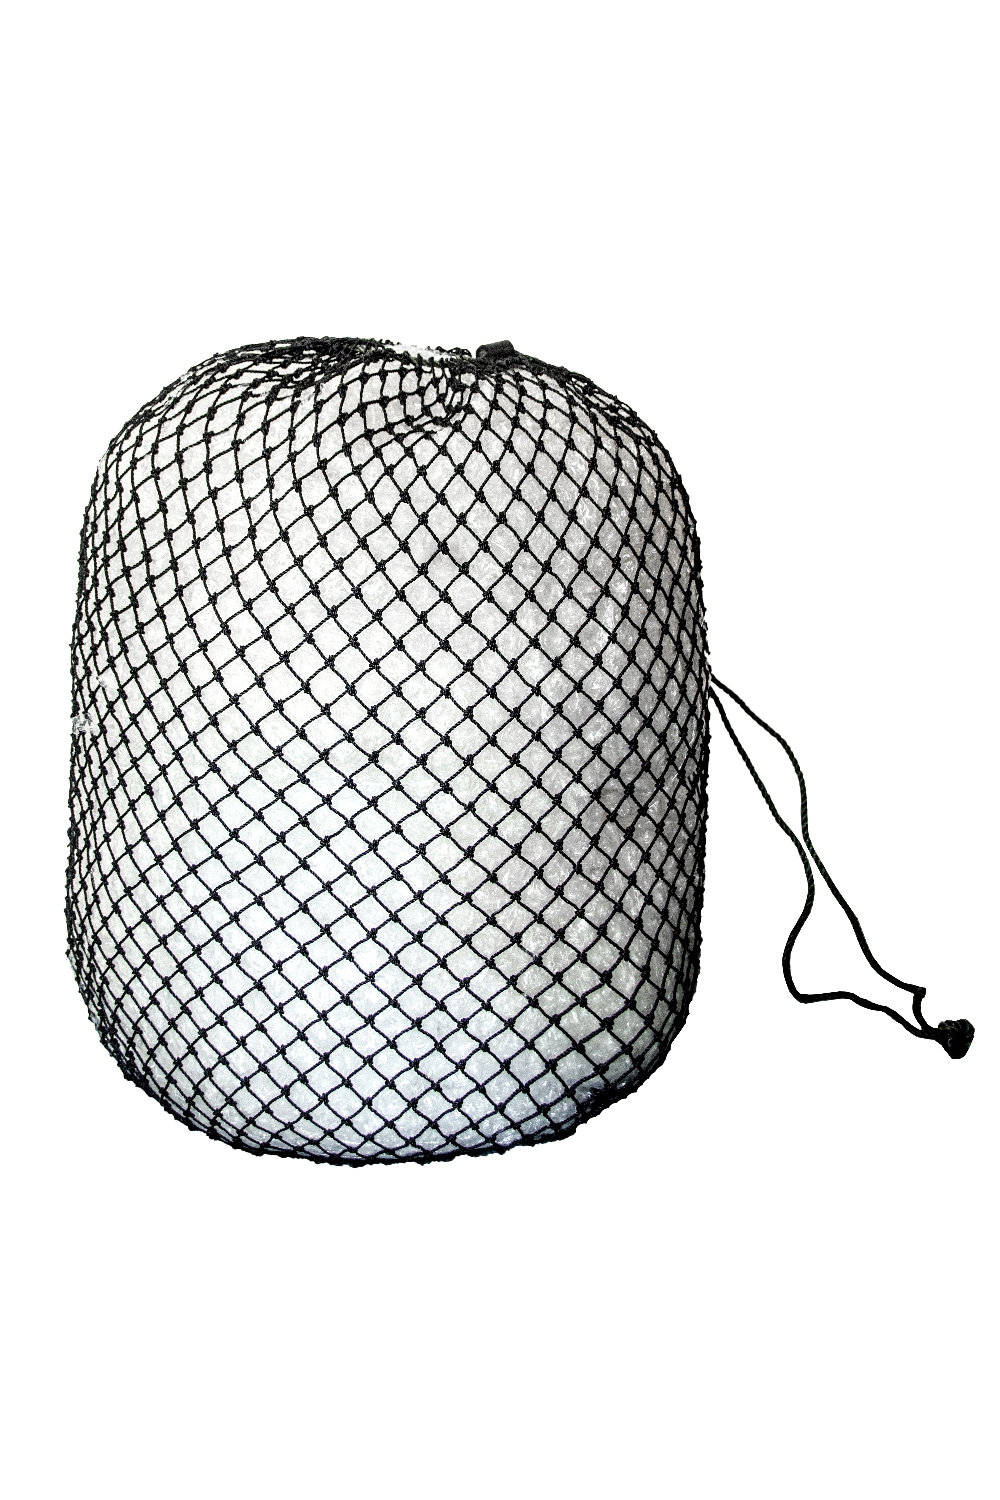 mesh-gear-bag-60cm-high-x-50cm-diam